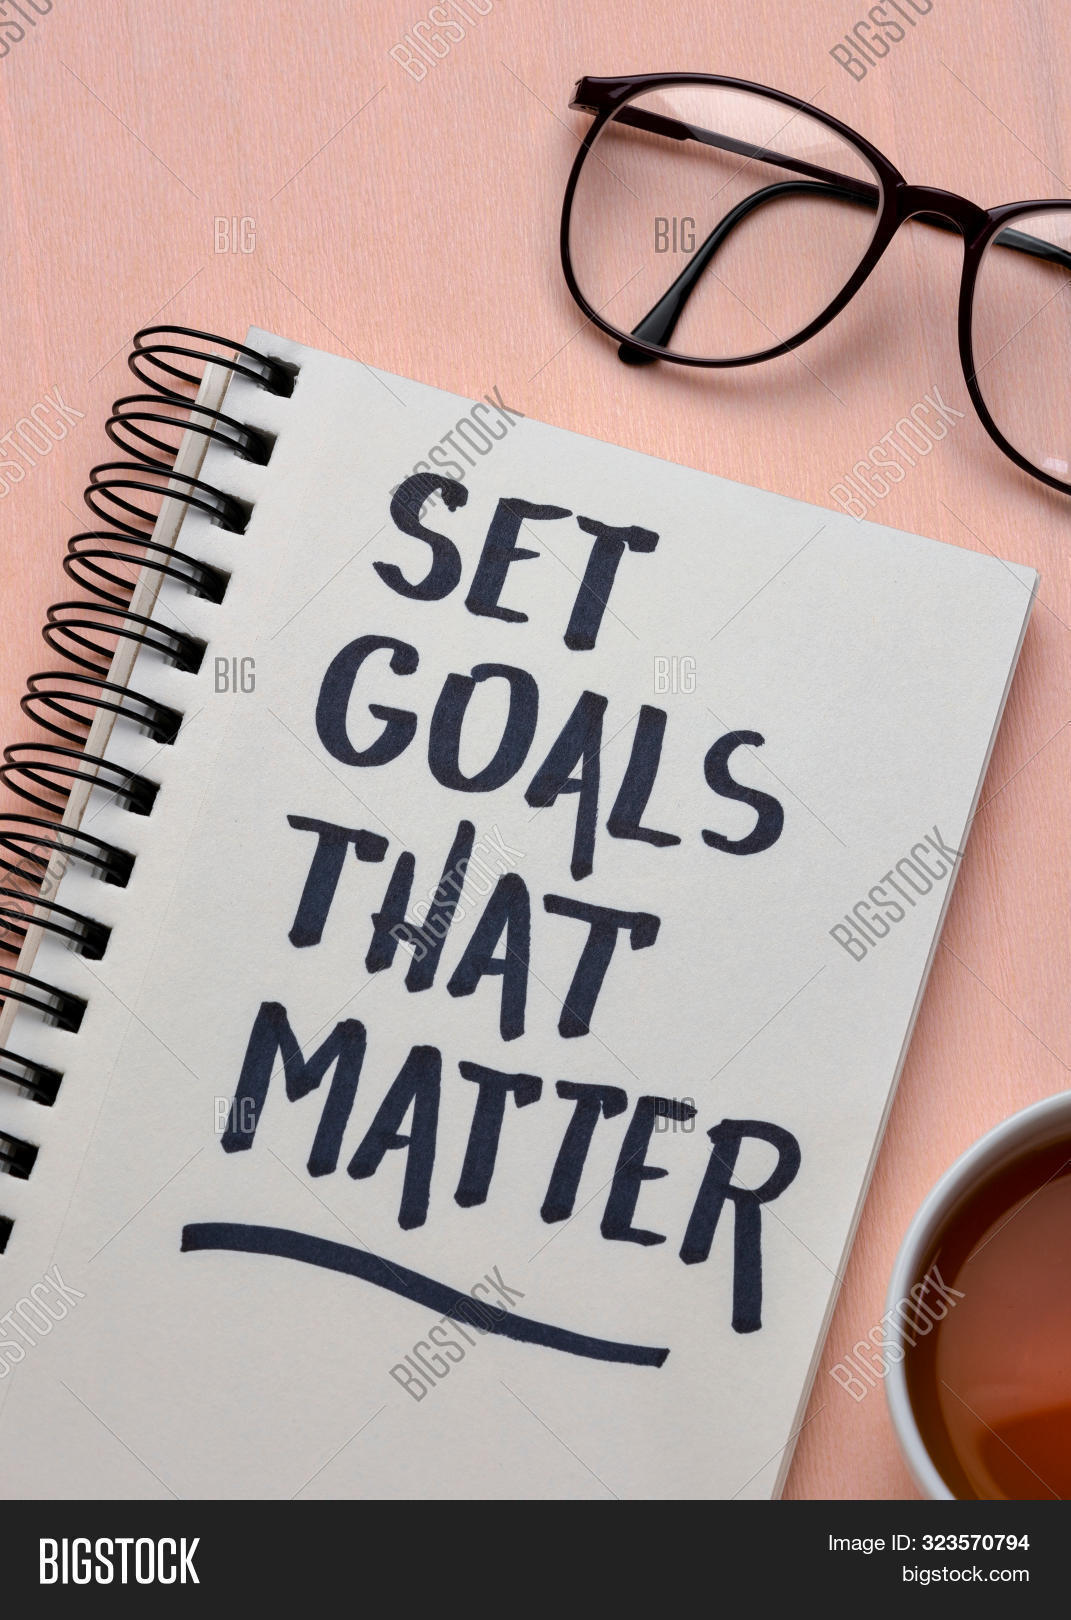 advice,business,concept,education,flat lay,goal,goal setting,handwriting,important,inspiration,inspirational,matter,meaningful,memo,message,motivation,motivational,note,notebook,reminder,set goals,significant,smart goals,success,tea,vertical